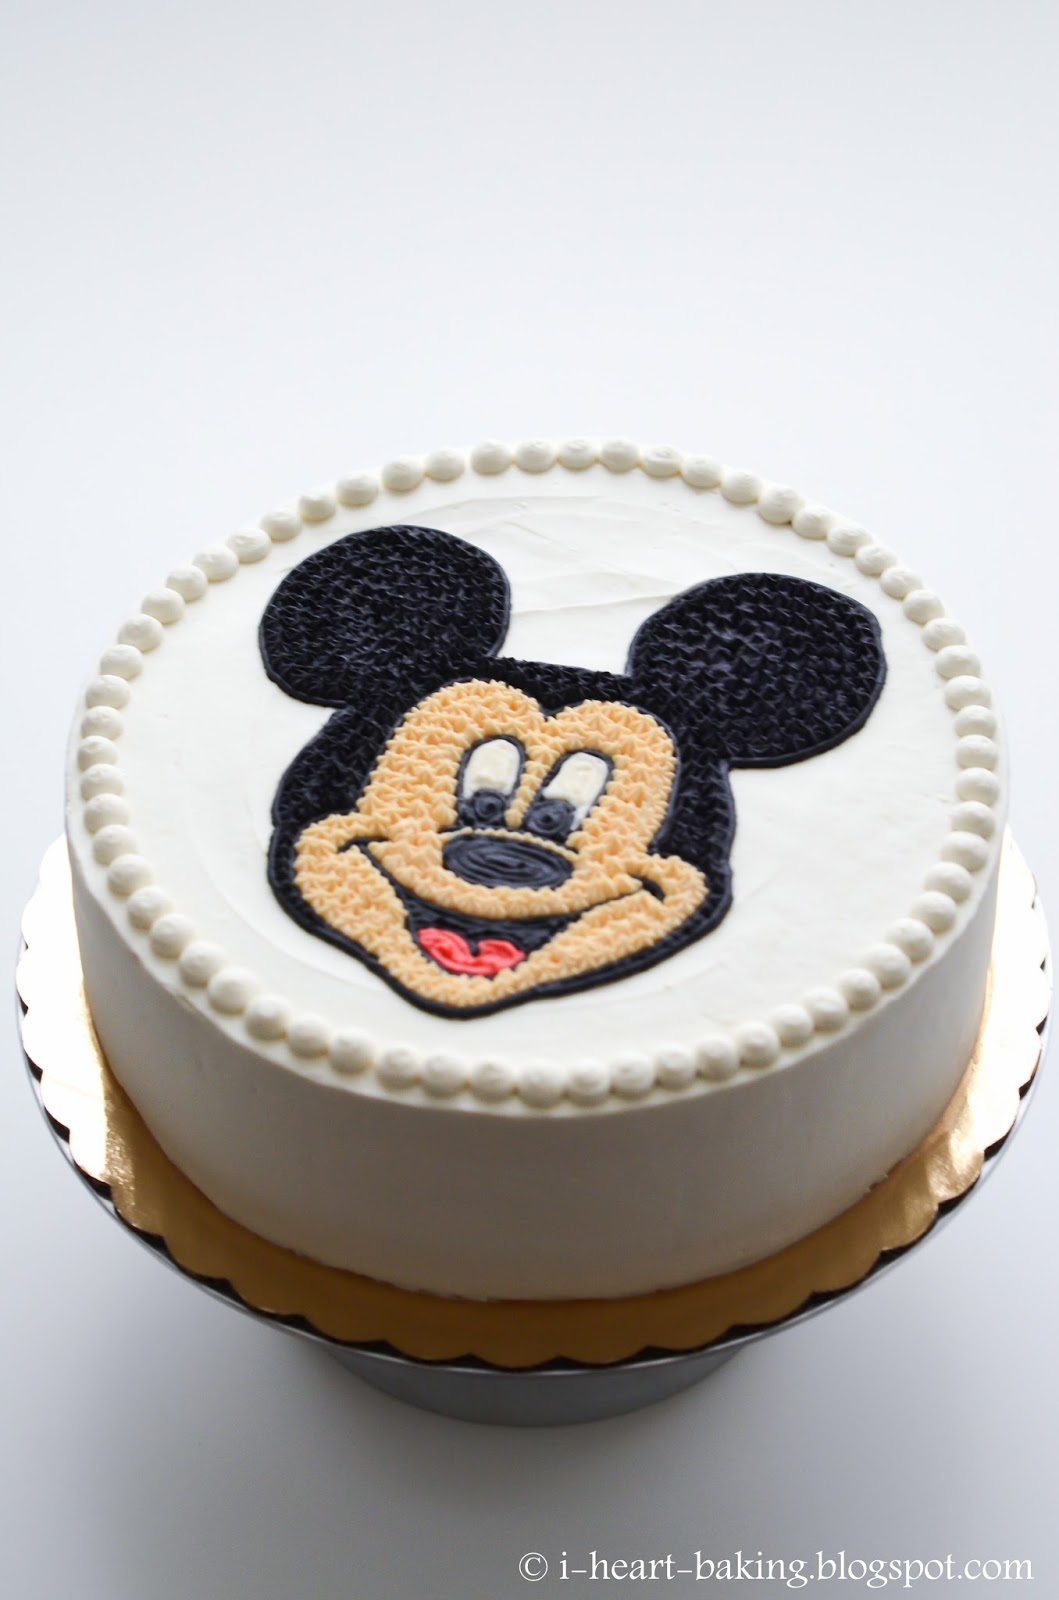 i heart baking!: mickey mouse face birthday cake